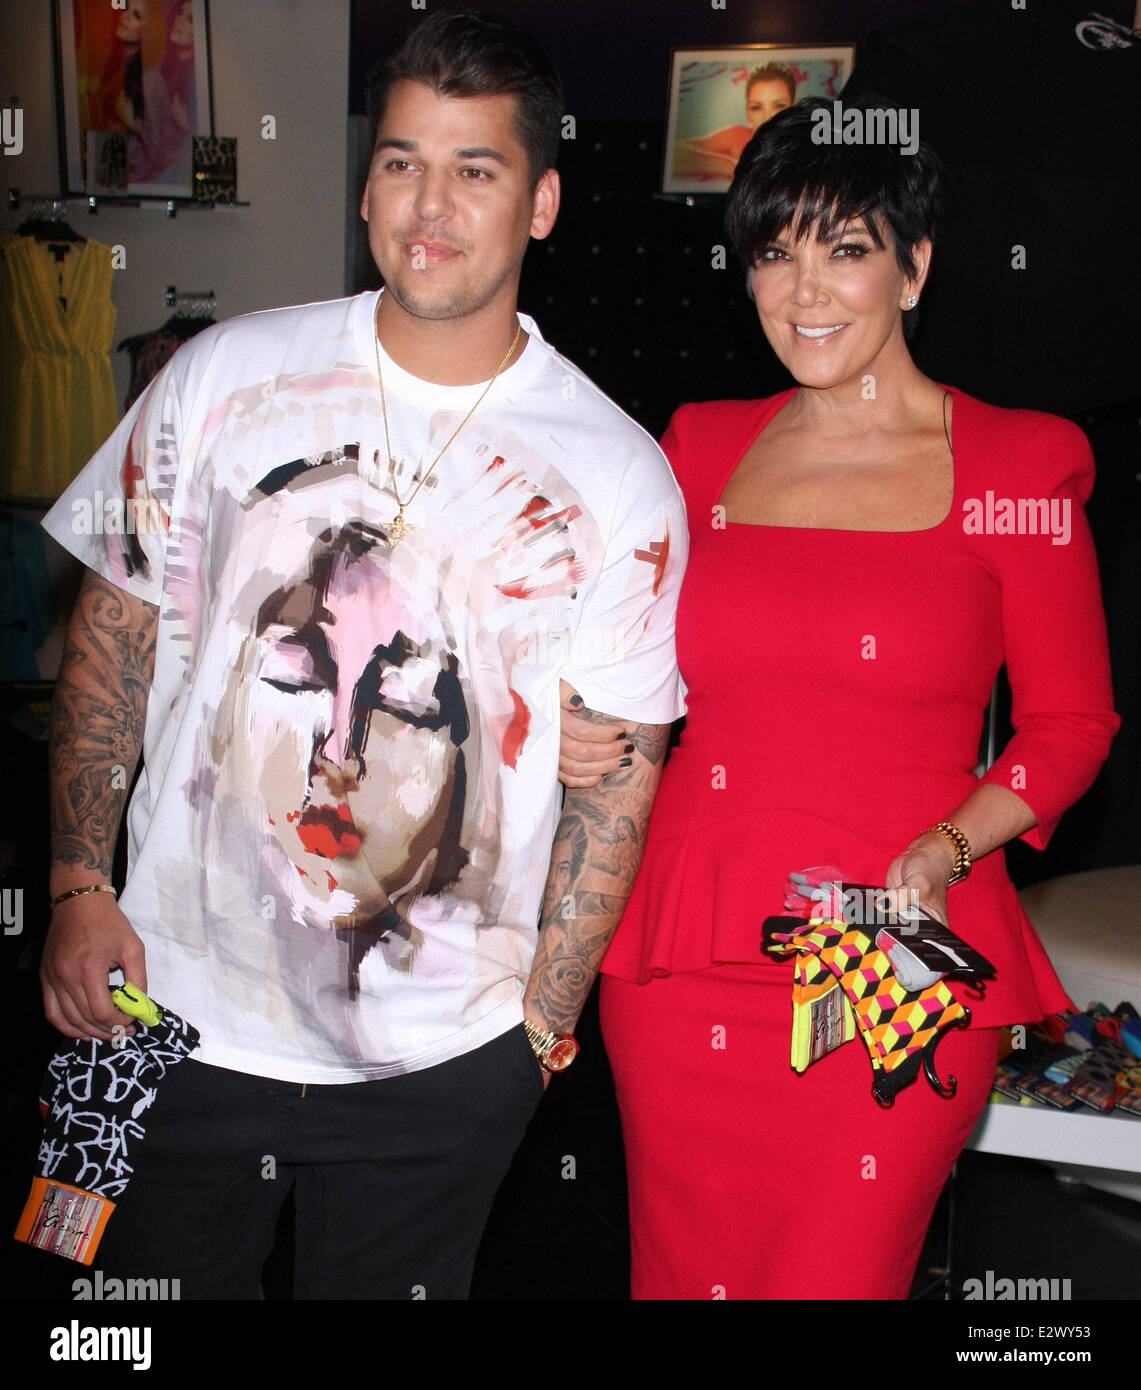 Bedwelming Rob Kardashian and his mother promote 'Arthur George by Robert @OD02